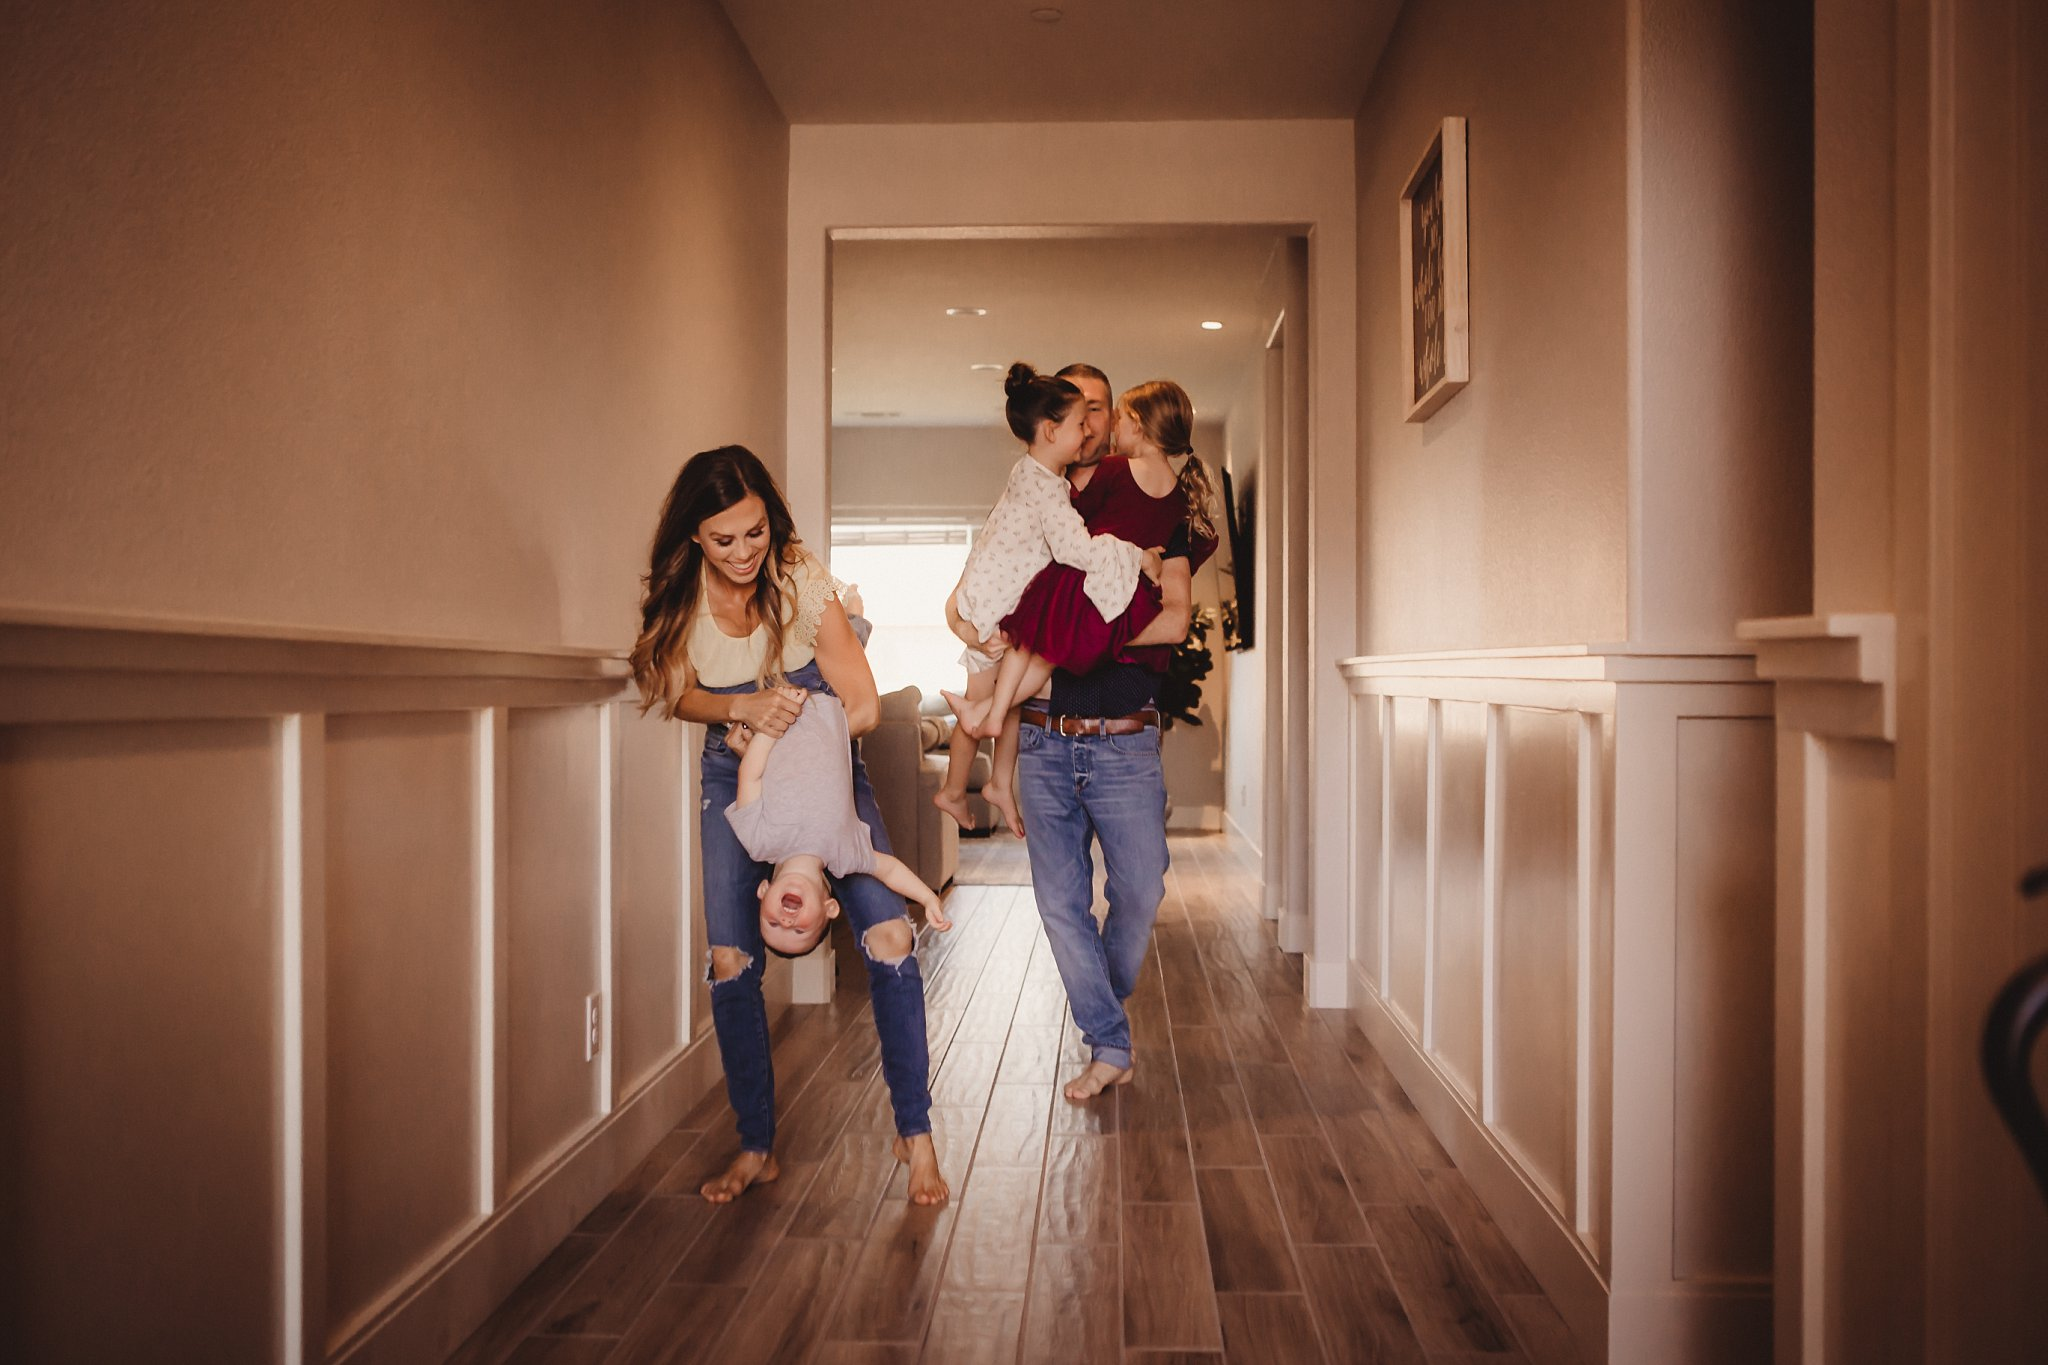 Family dancing in their hallway